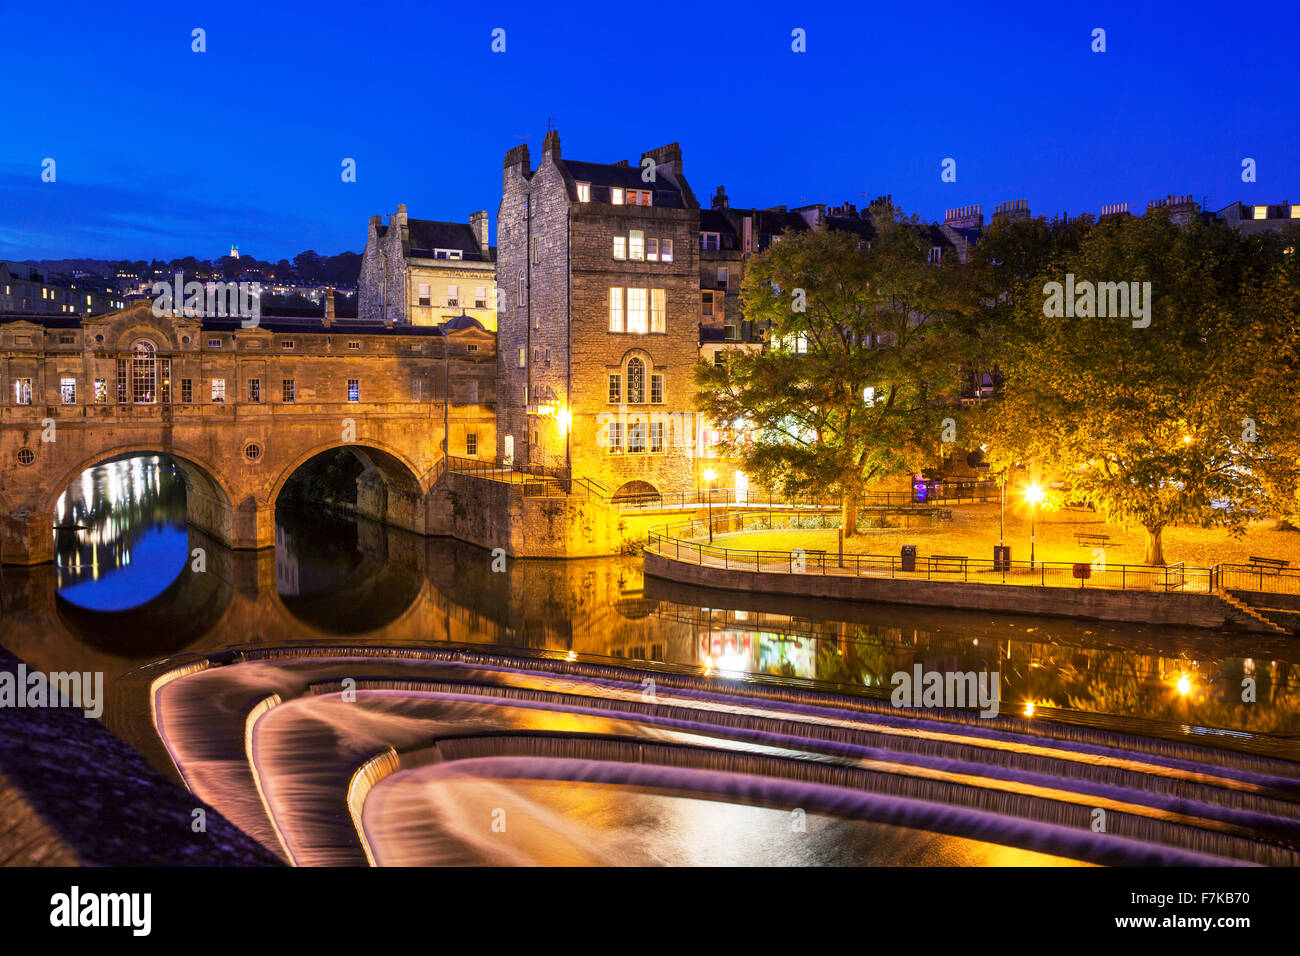 Bath Weir and Pulteney Bridge, Avon, Somerset, England, U.K. - Stock Image